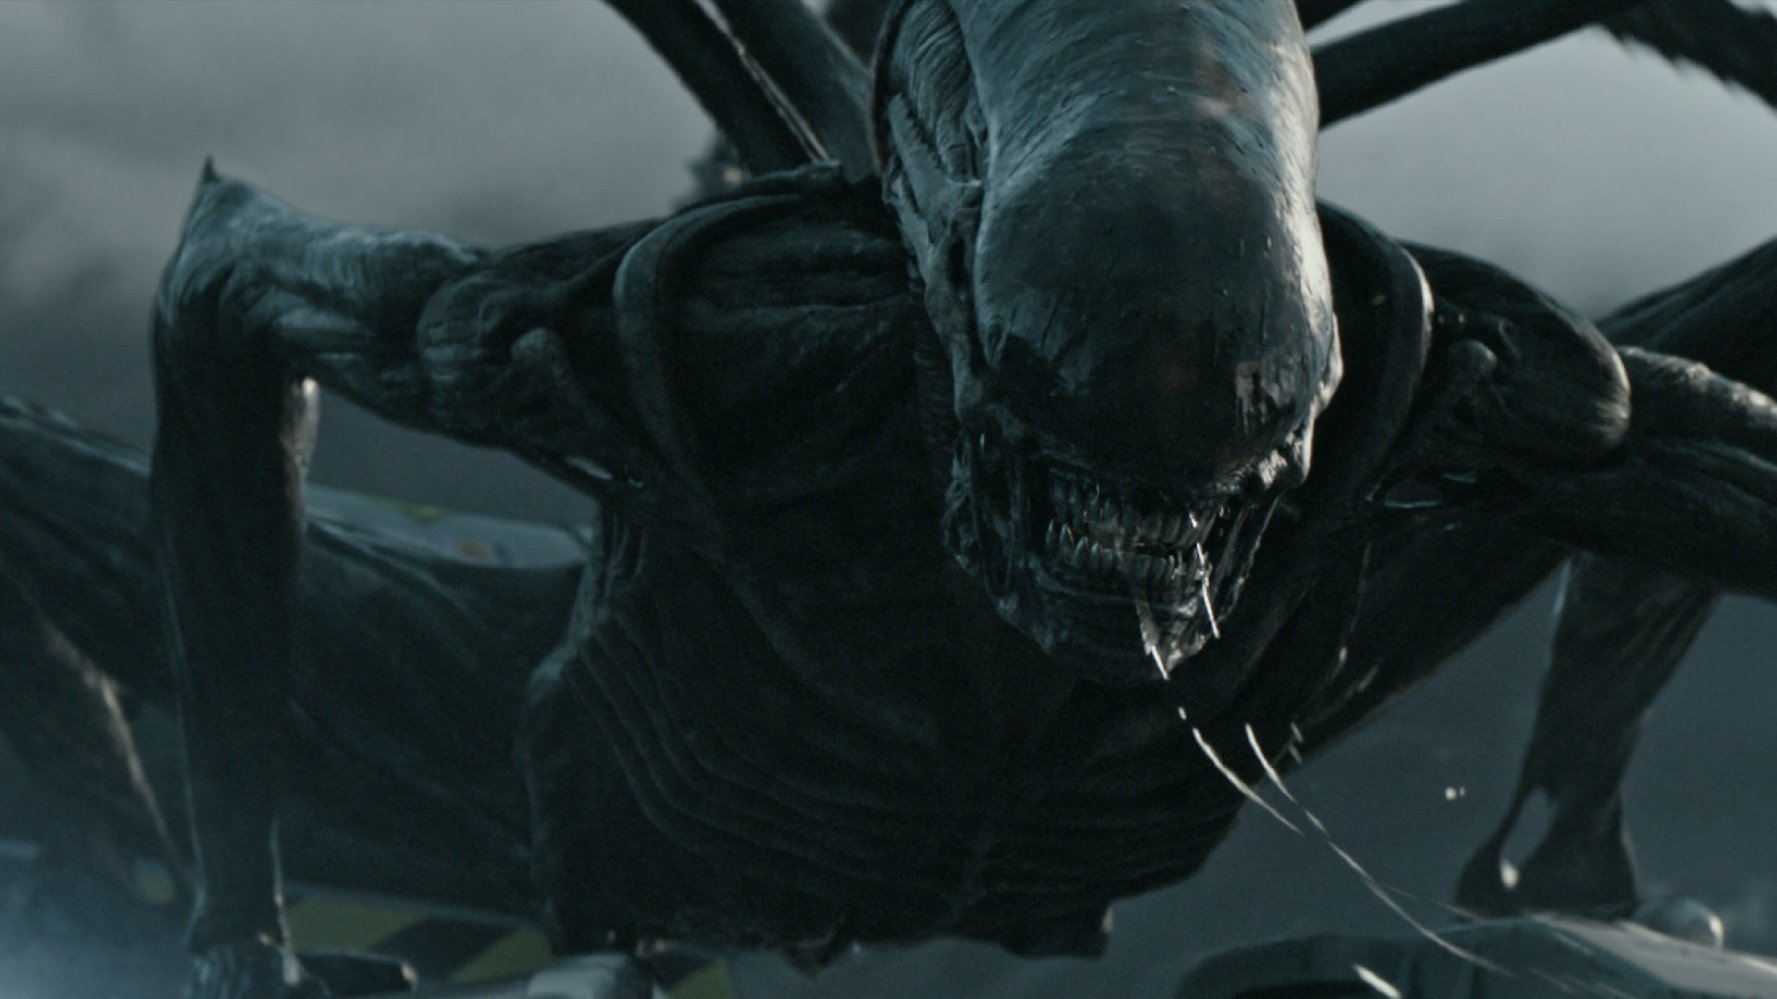 Weekend box office: Alien Covenant dethrones Guardians of the Galaxy